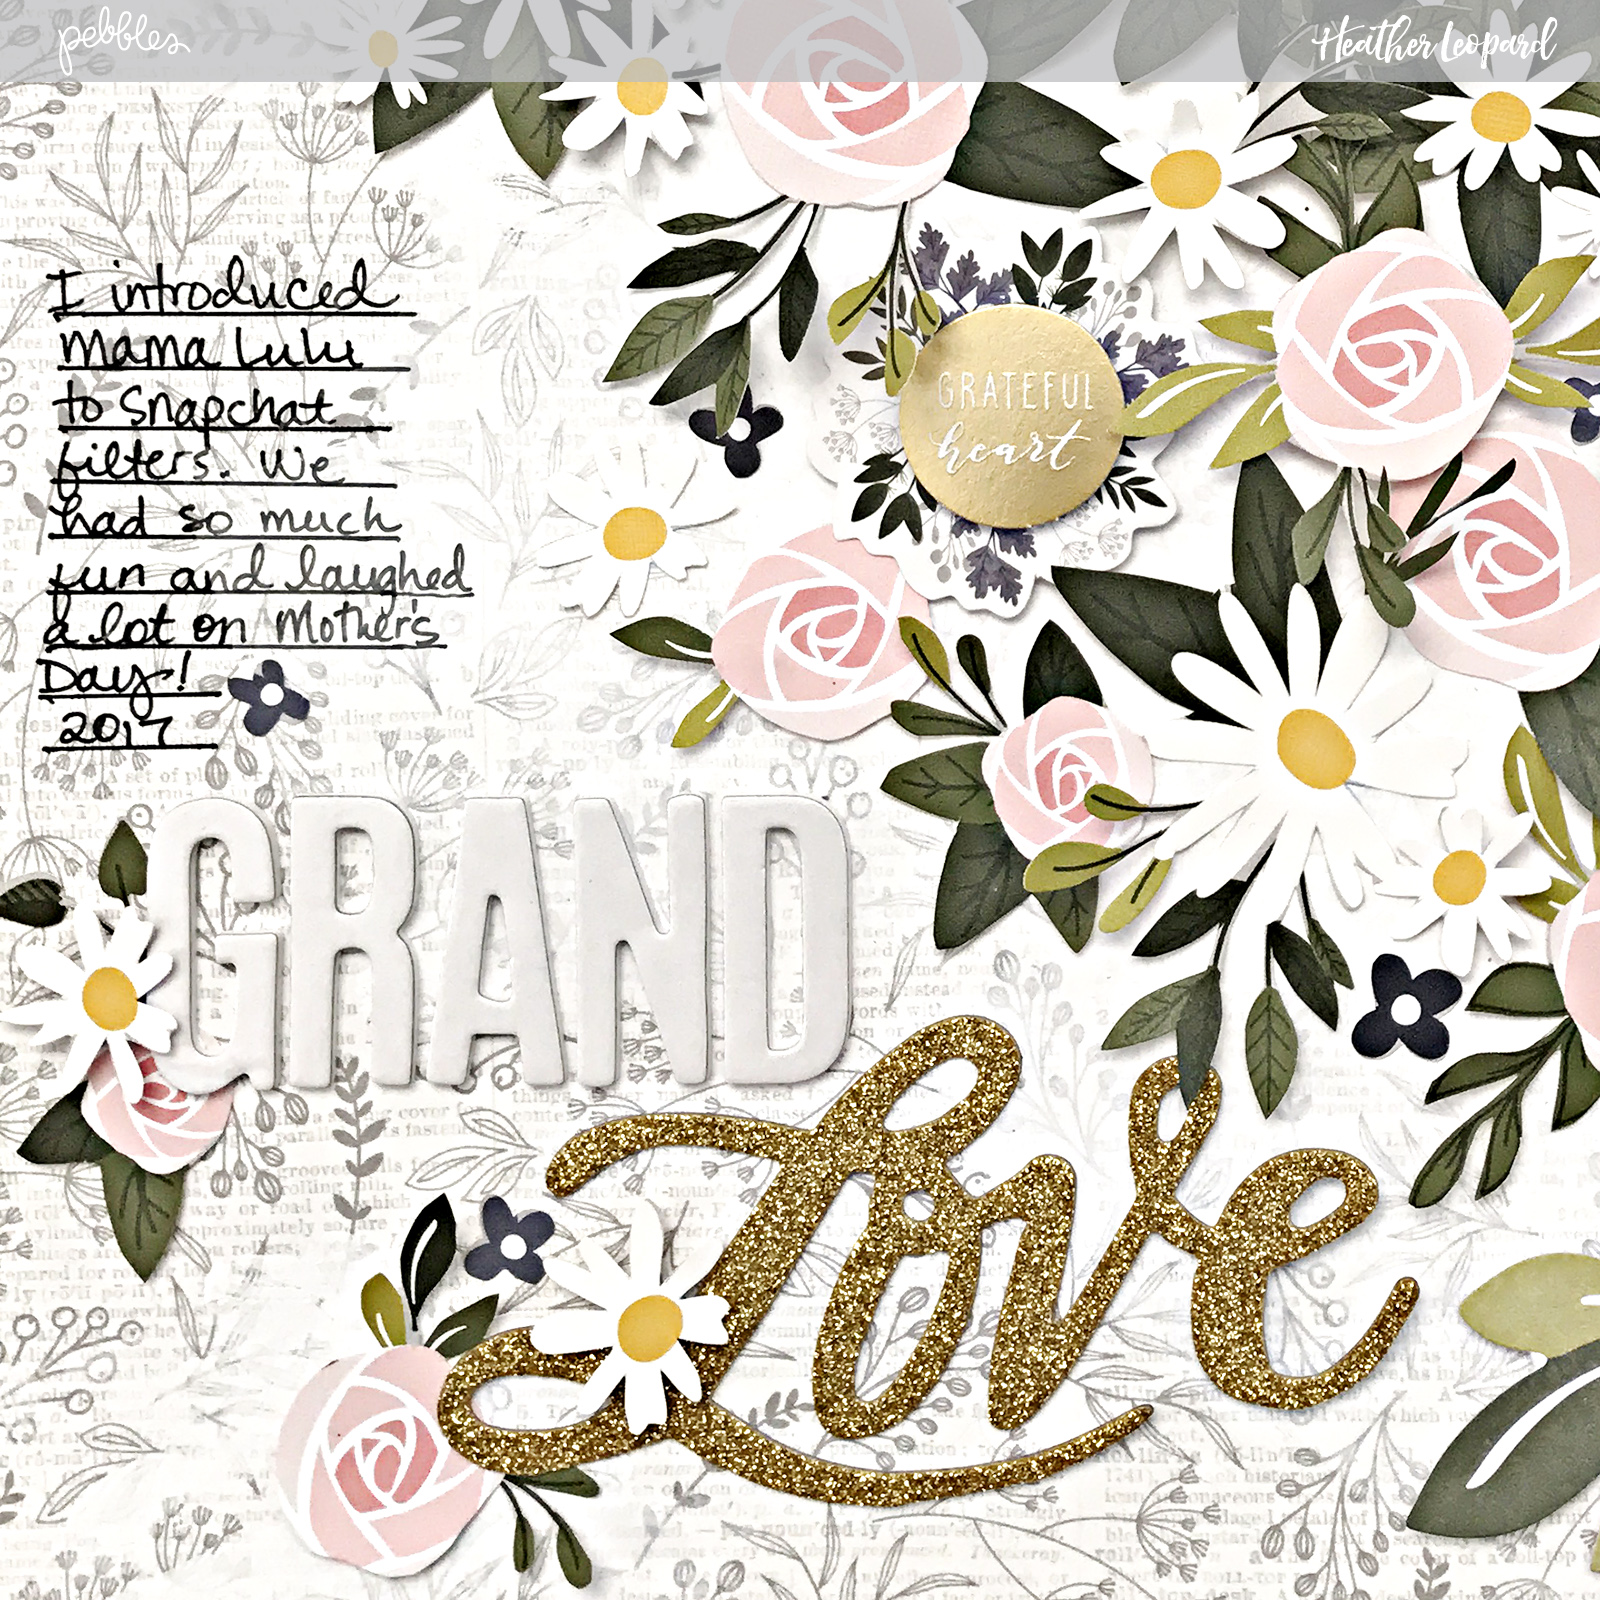 Grand Love Grandparents Scrapbooking Layout by @heatherleopard #madewithpebbles #heartofhome #scrapbooking #scrapbook #grandparentsday #grandparents #flowers